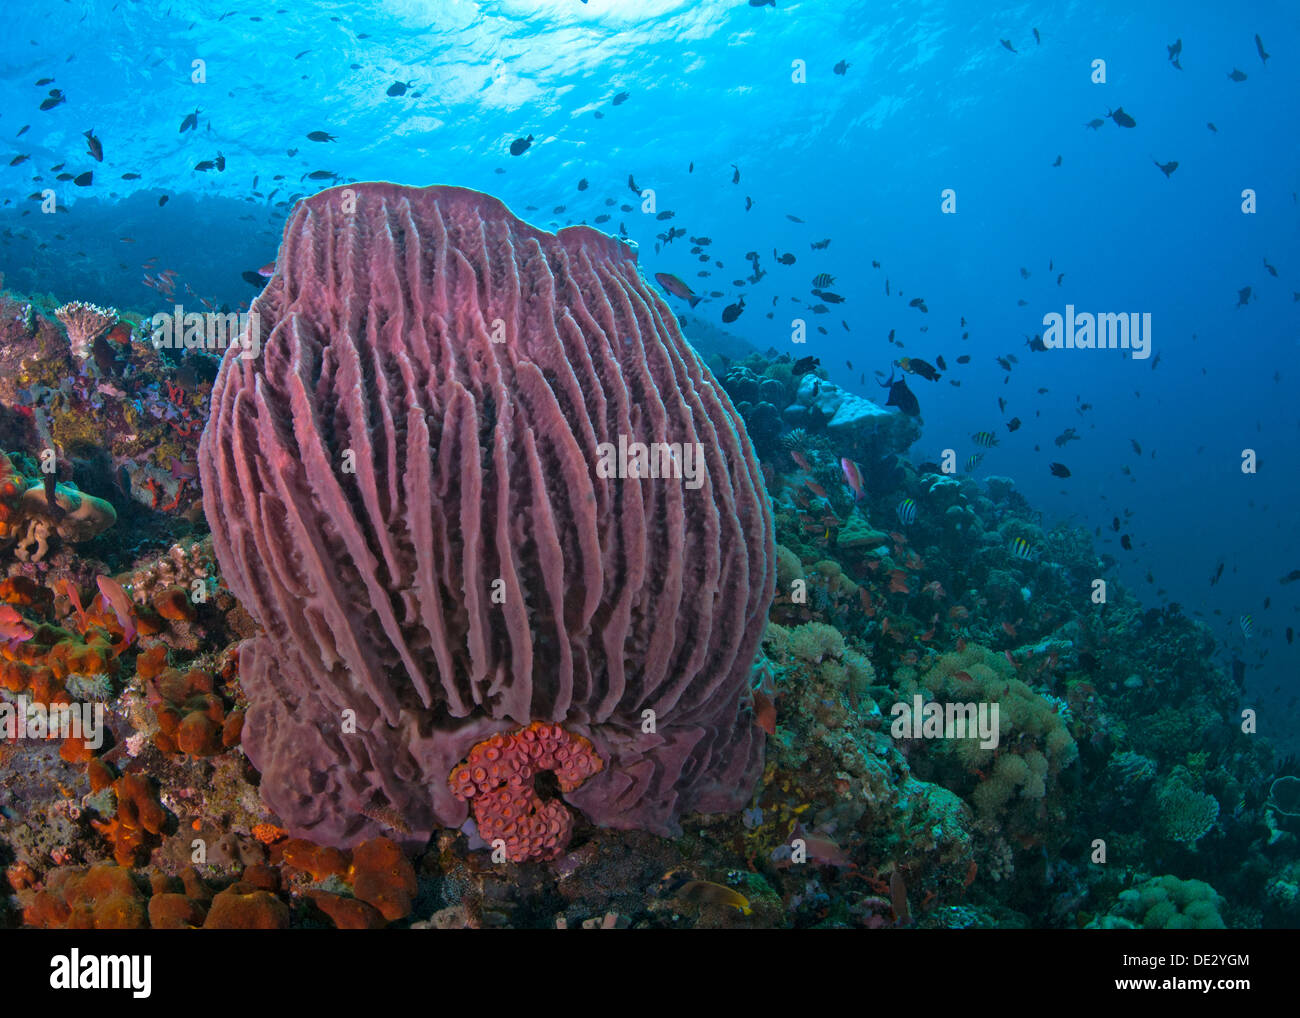 Coral reef seascape featuring large red barrel sponge with blue water background. Verde Island, Philippines. - Stock Image